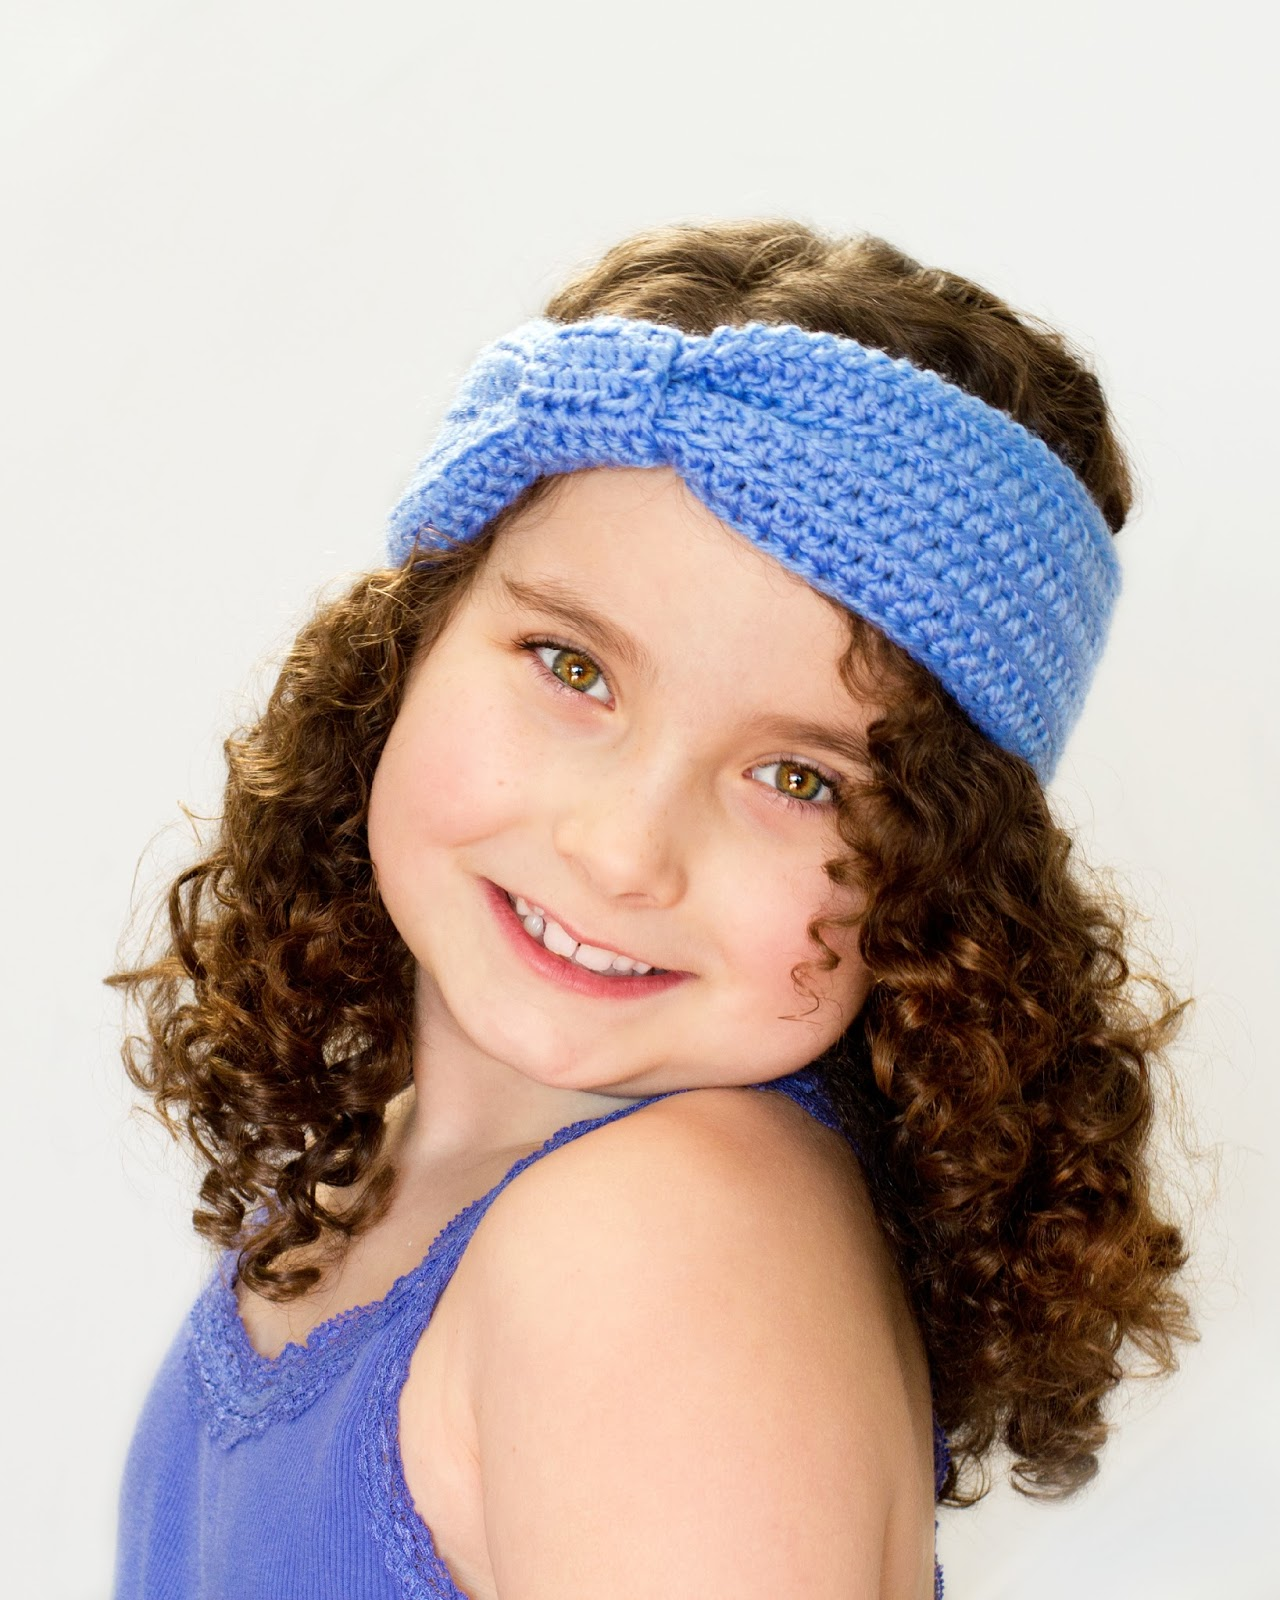 Free Crochet Pattern For Turban Headband : Hopeful Honey Craft, Crochet, Create: 10 Free Beautiful ...